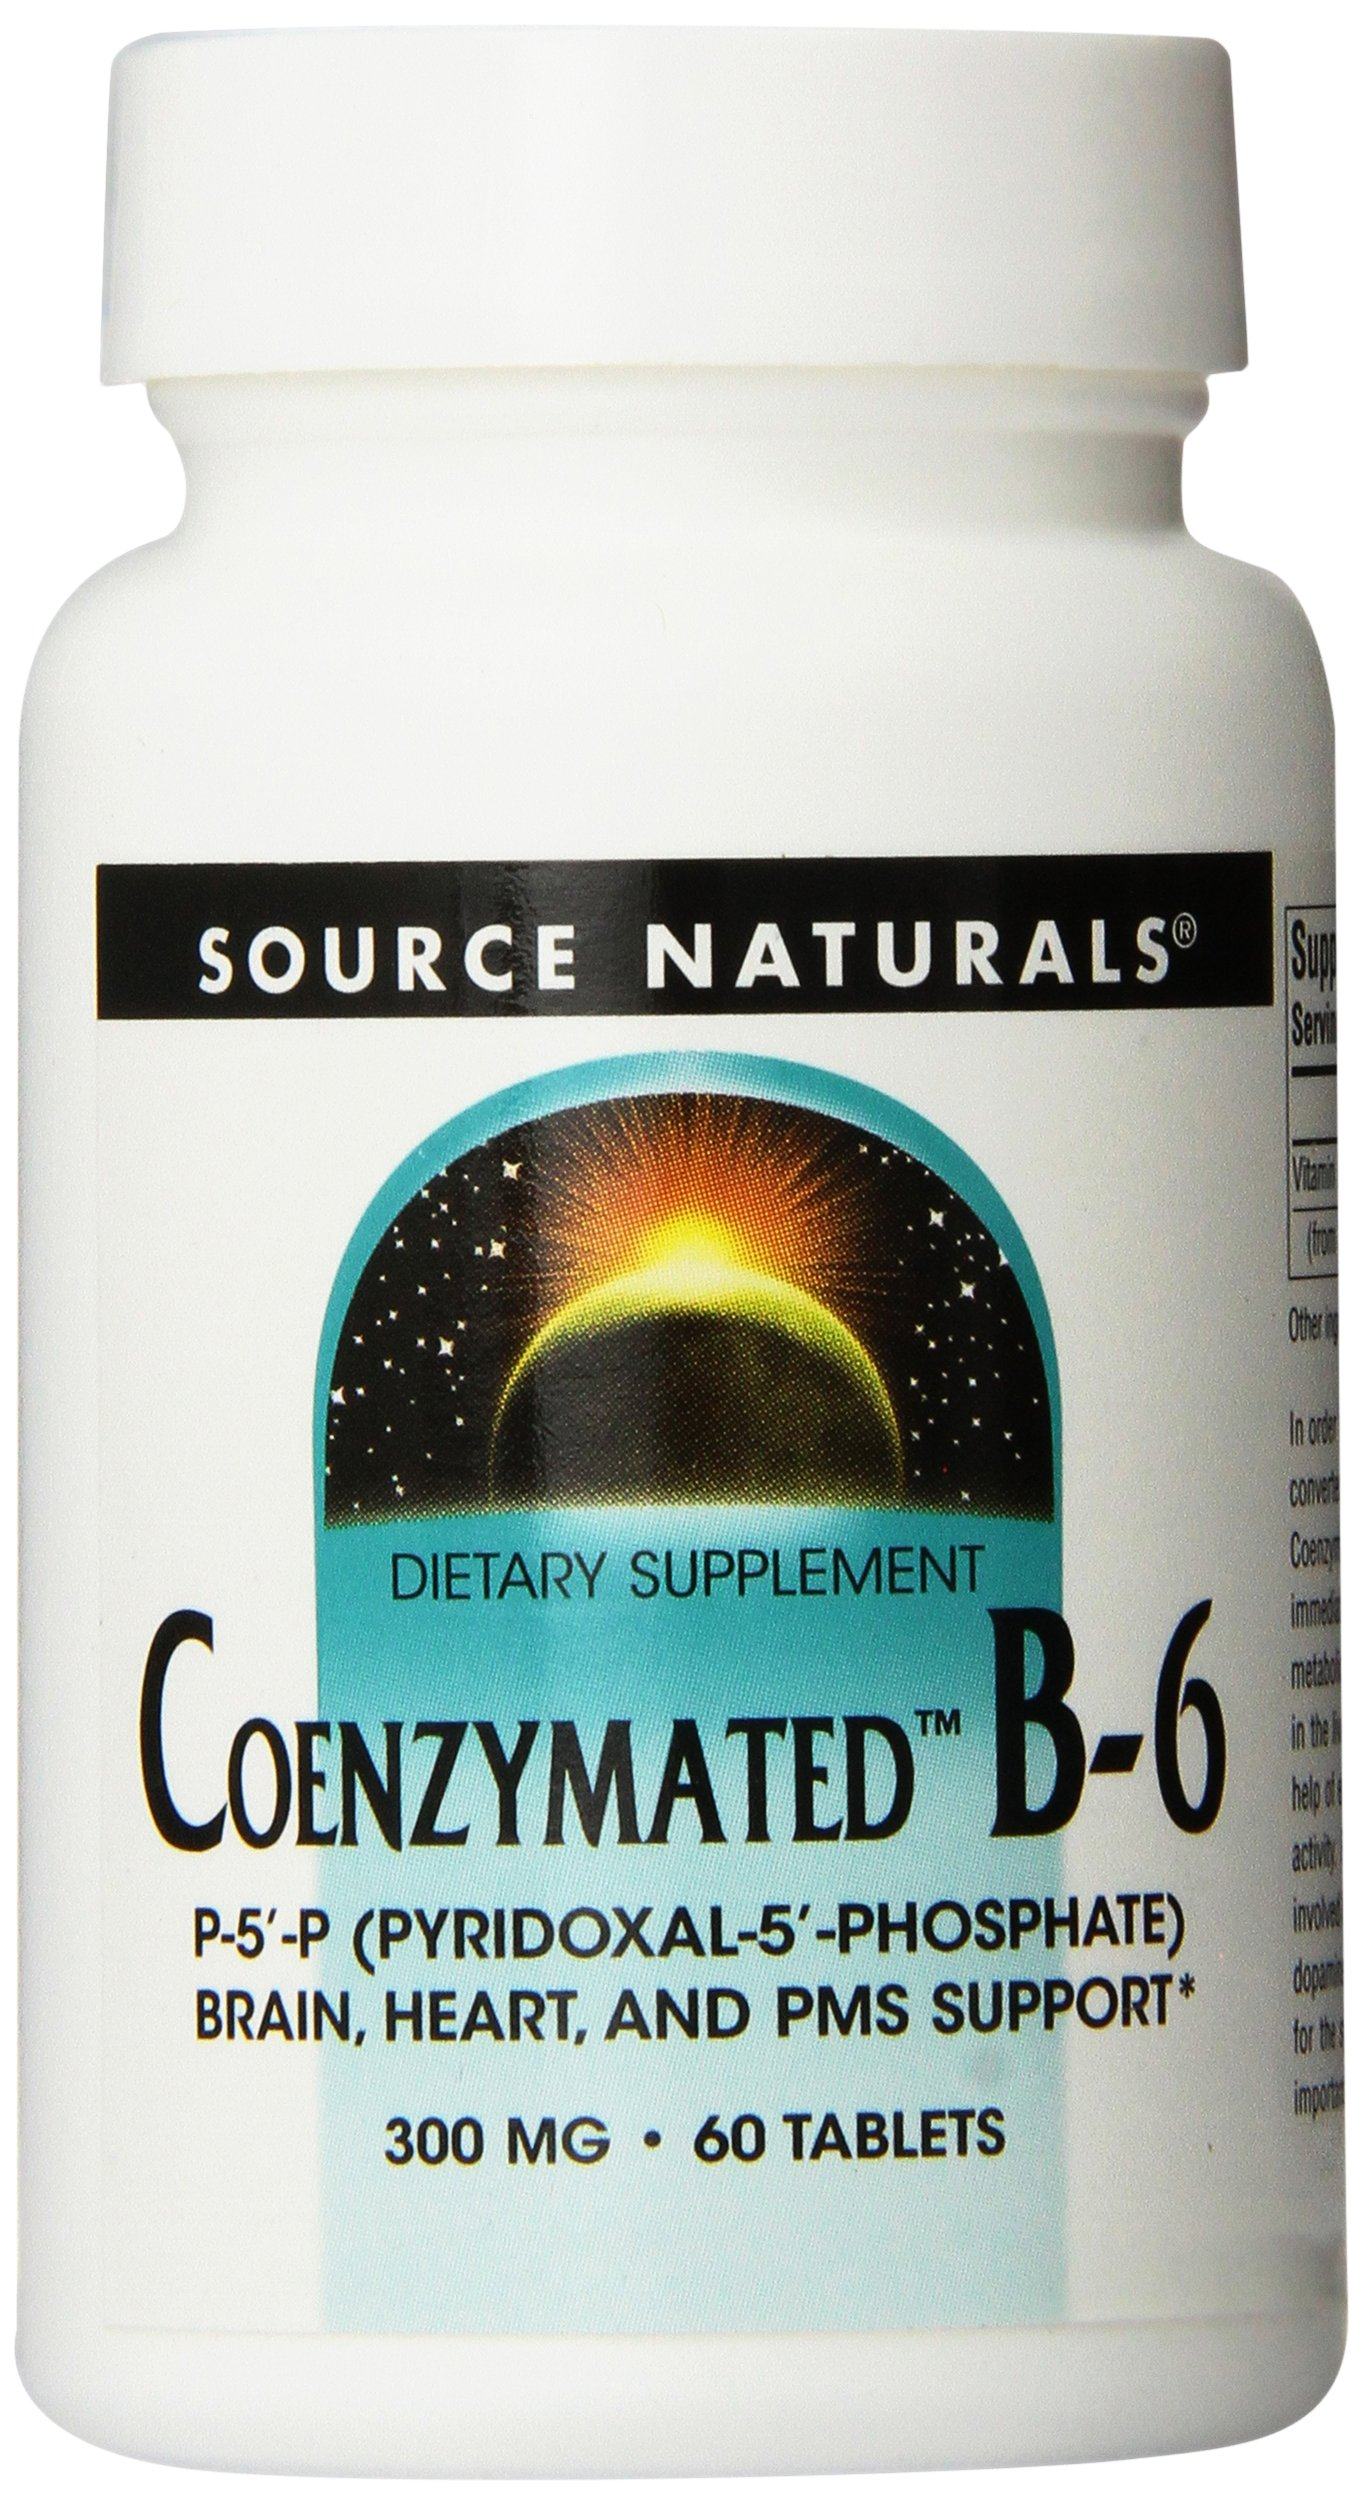 Source Naturals Coenzymated B-6 300mg, Promotes a Healthy Nervous System,60 Tablets by Source Naturals